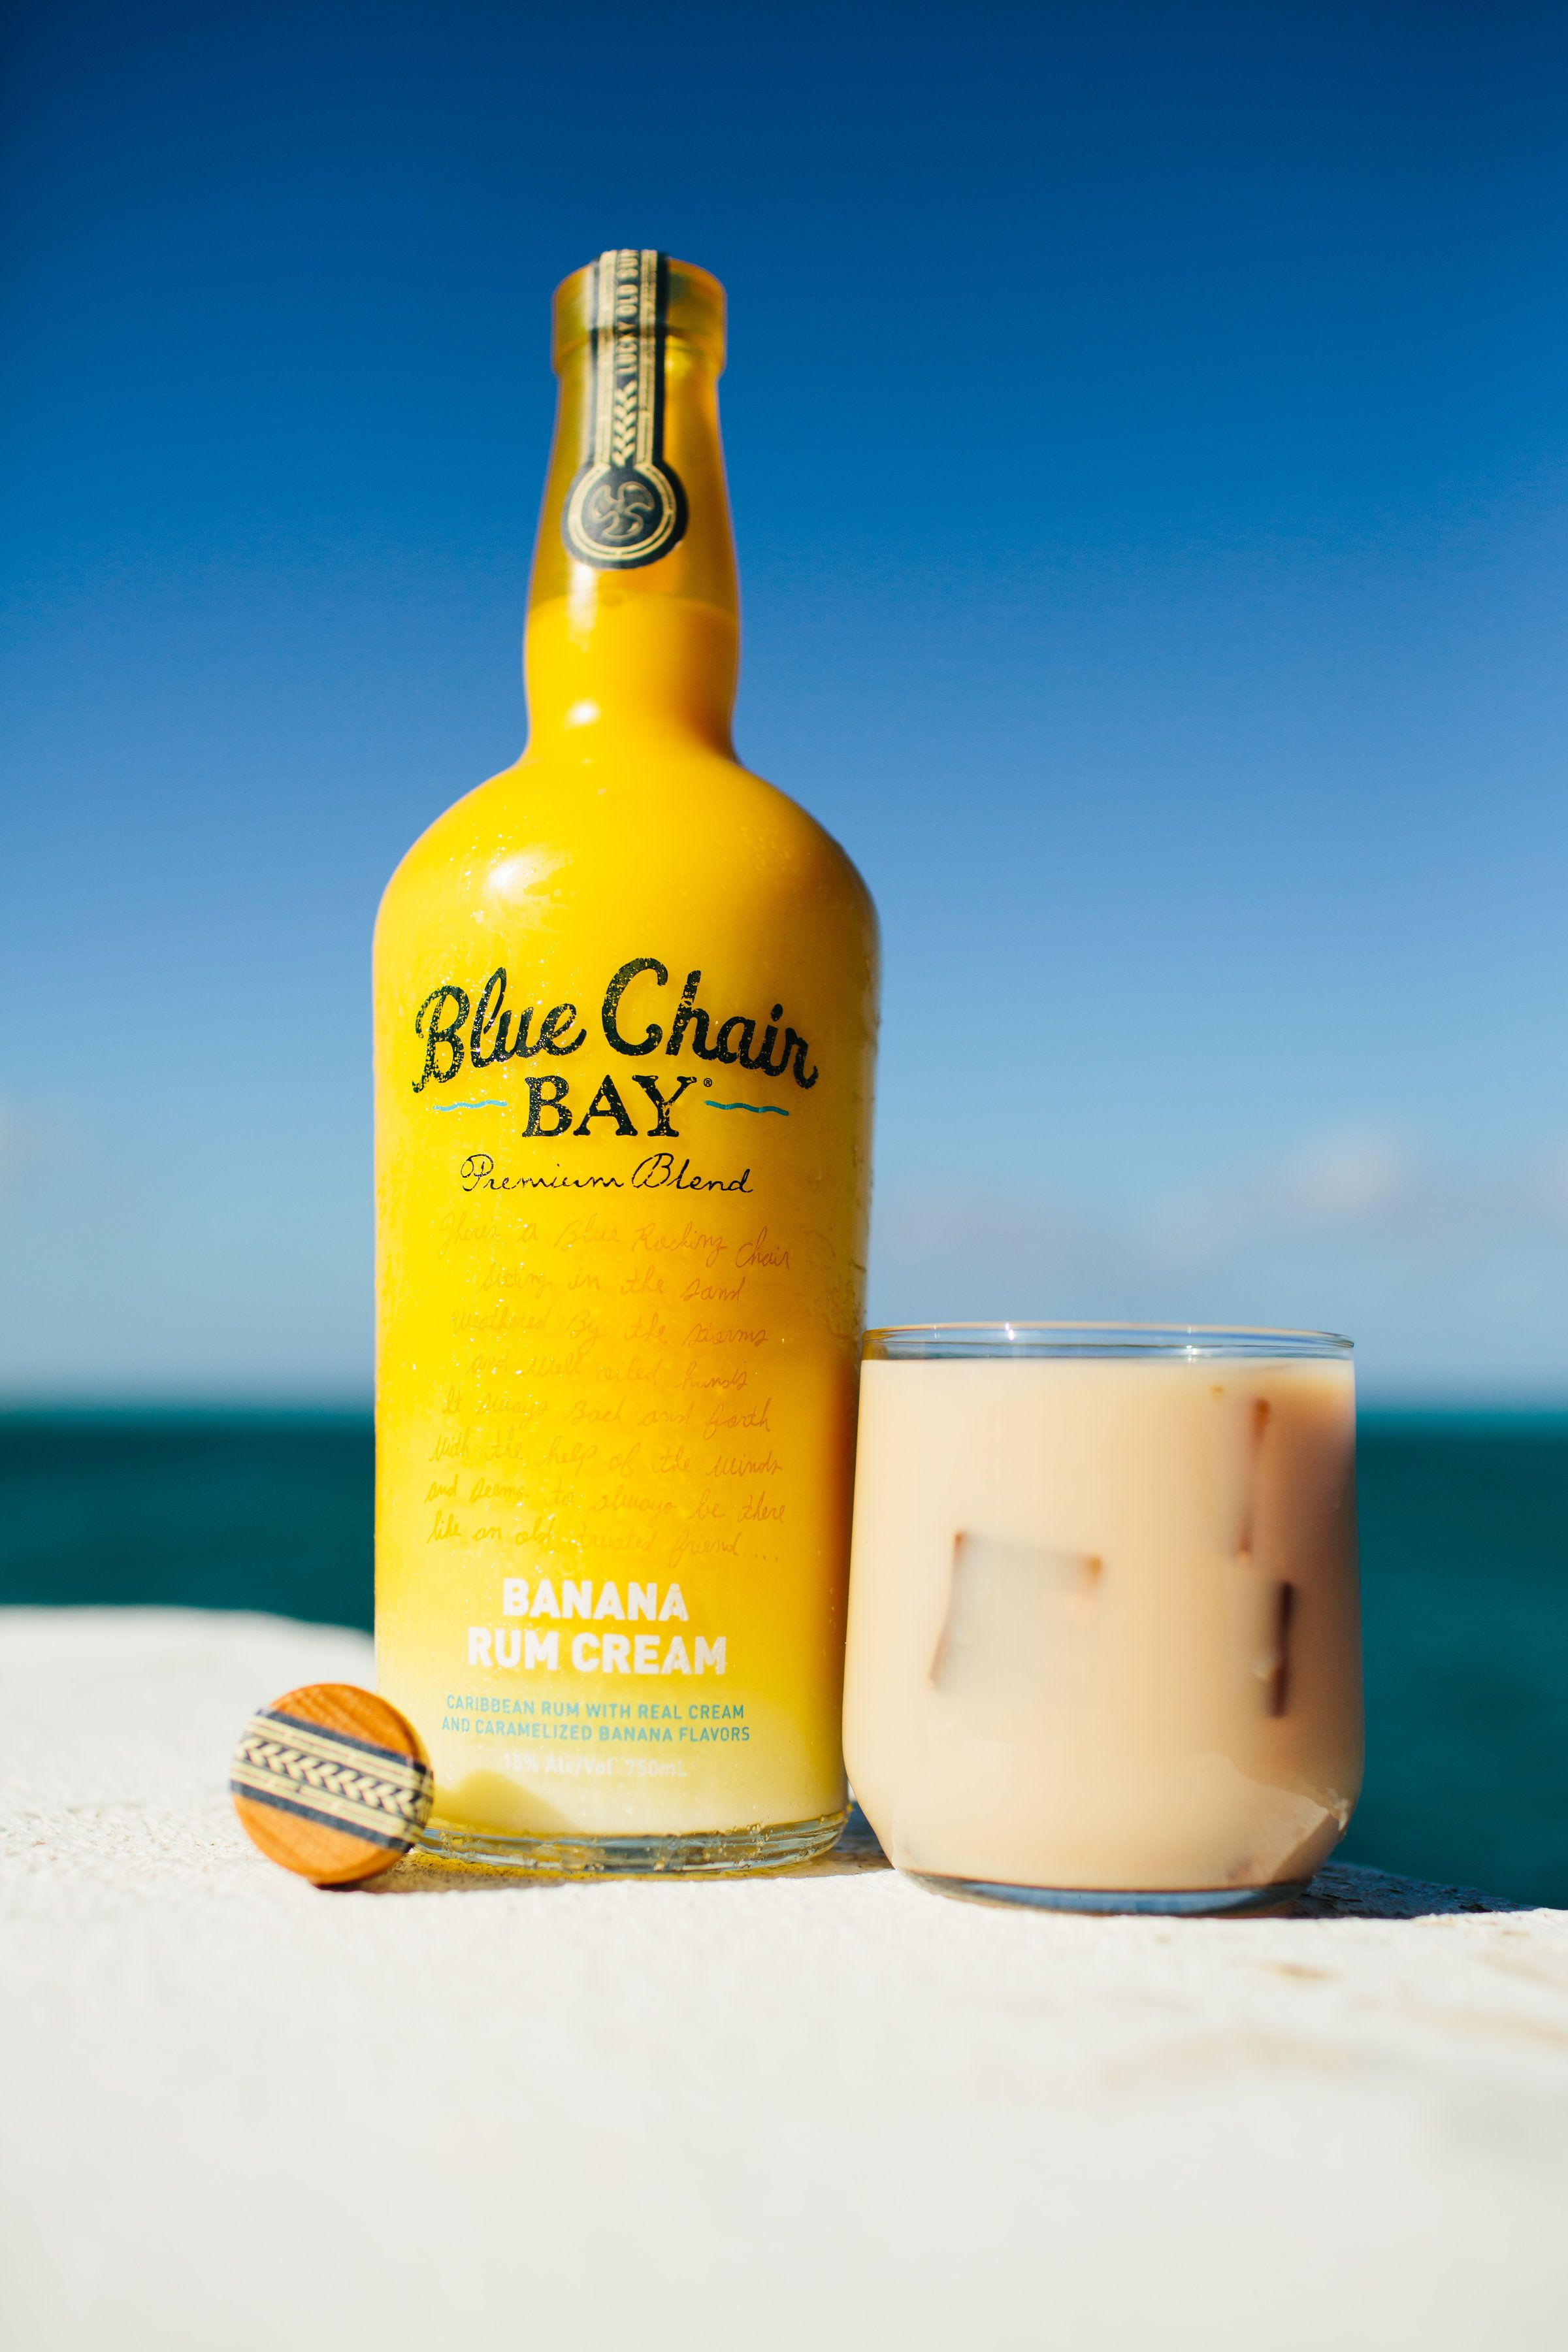 Blue Chair Bay Banana Rum Cream Calories Rocking Cushion Sets Island Coffee Cocktail 1 5 Oz 4 6 Chilled Black Pour Ingredients Over Ice And Serve 76